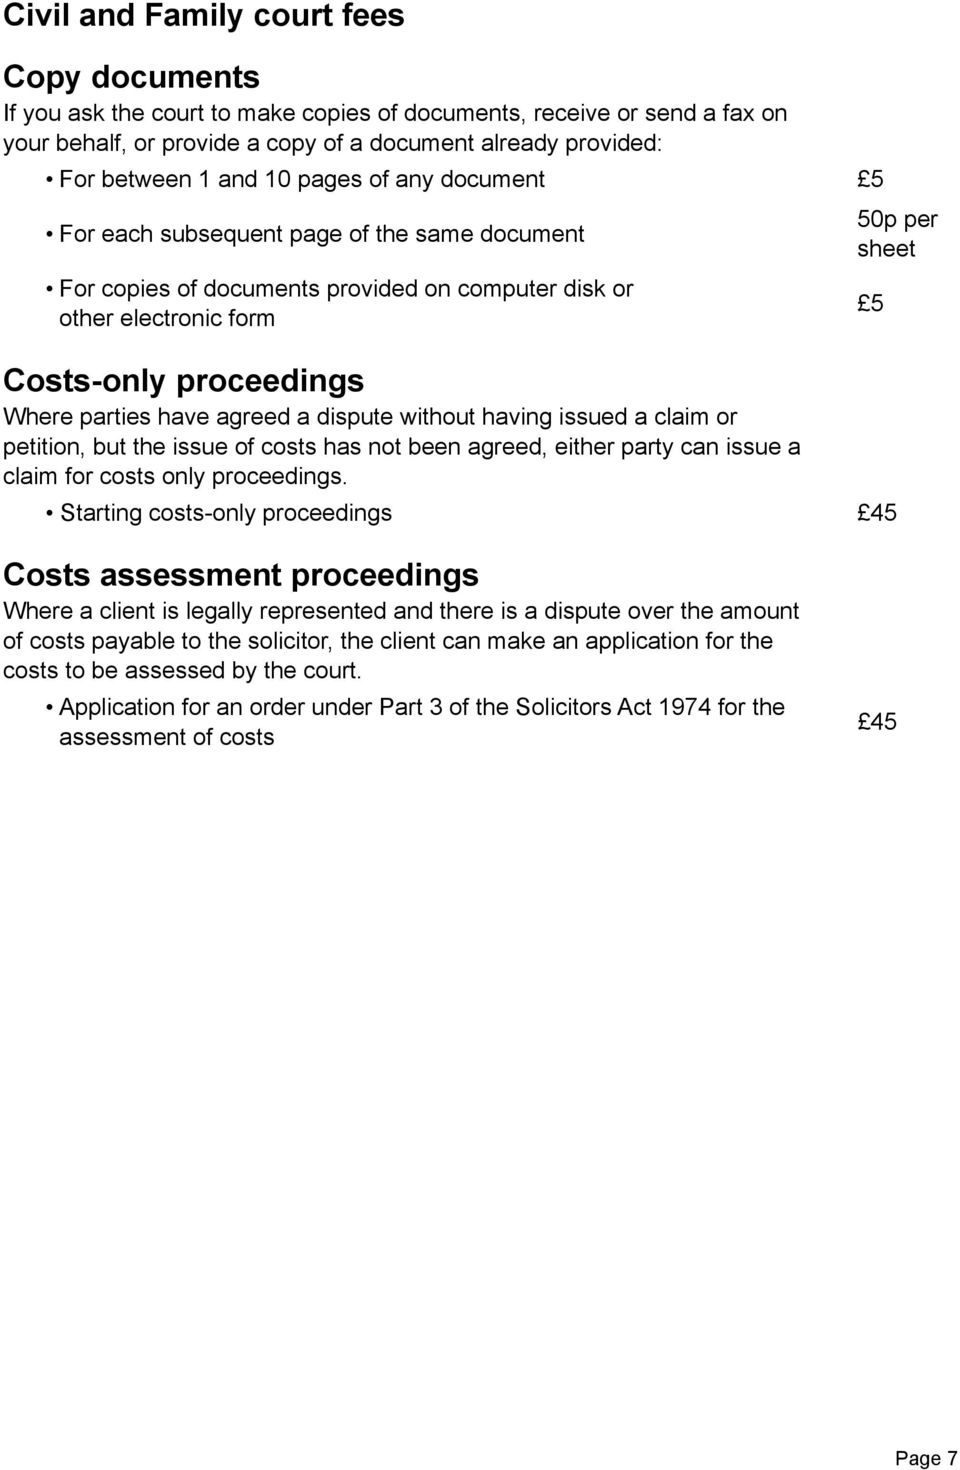 dispute without having issued a claim or petition, but the issue of costs has not been agreed, either party can issue a claim for costs only proceedings.